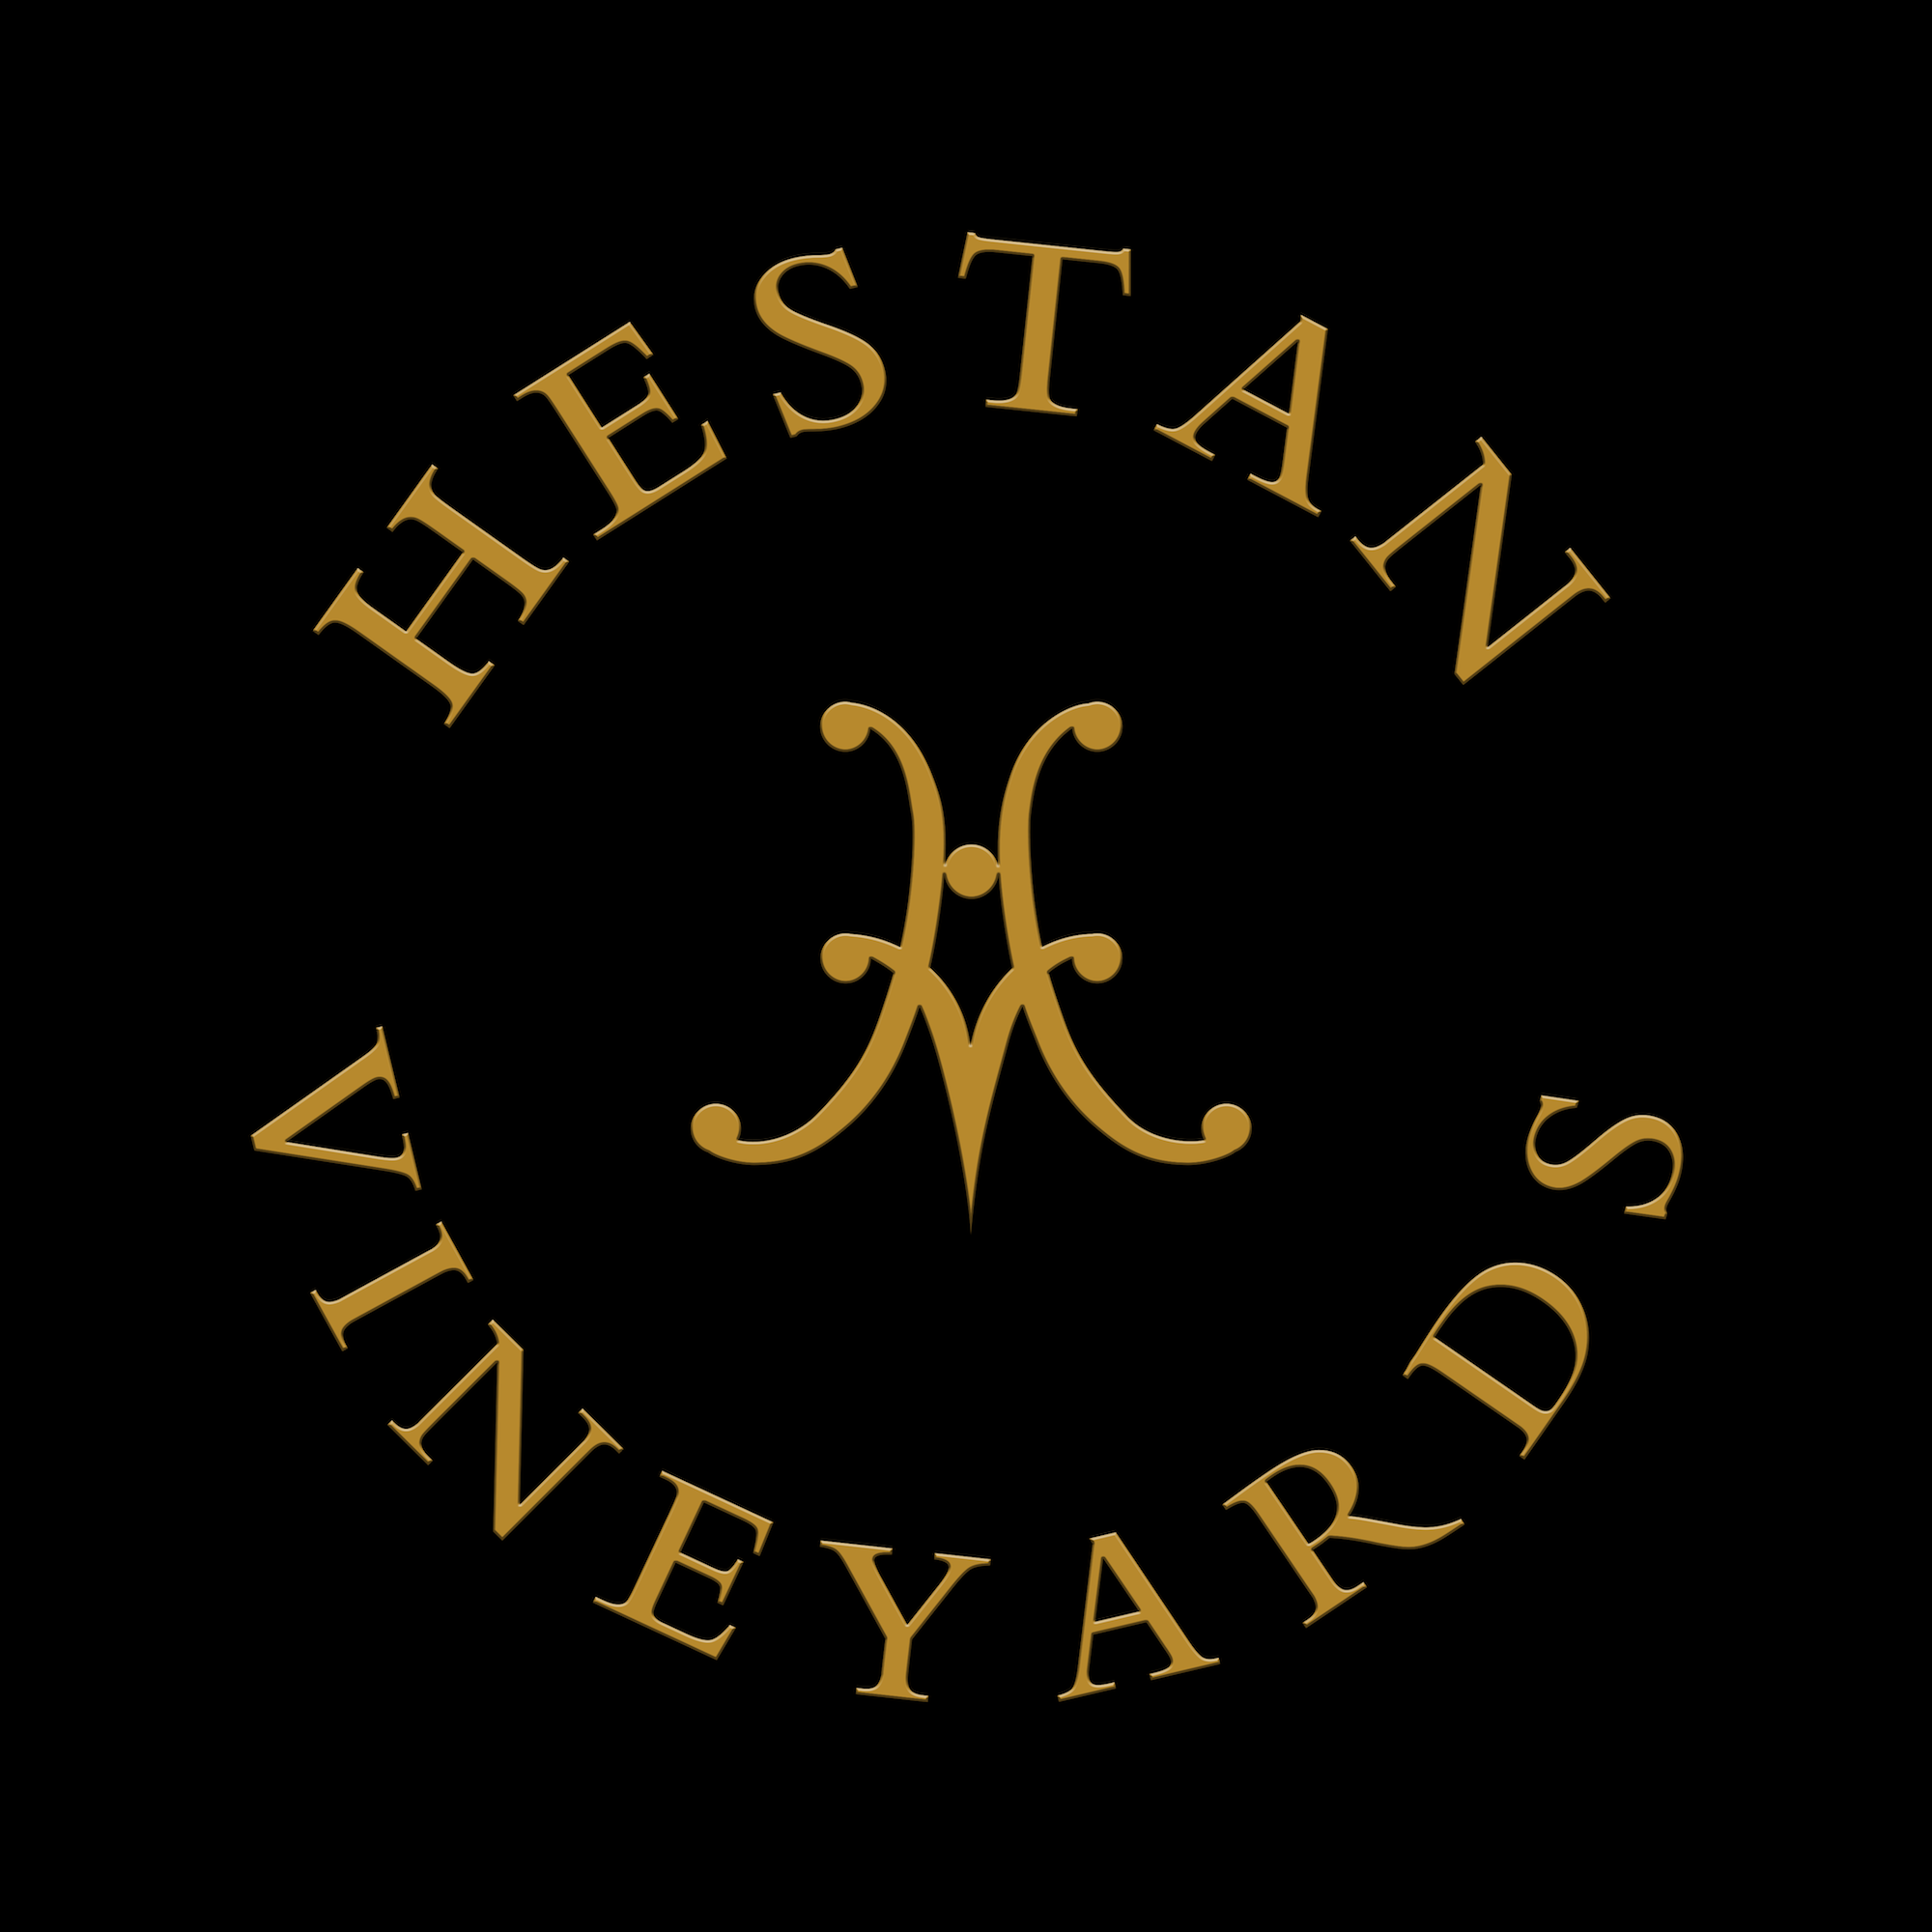 Hestan Vineyards